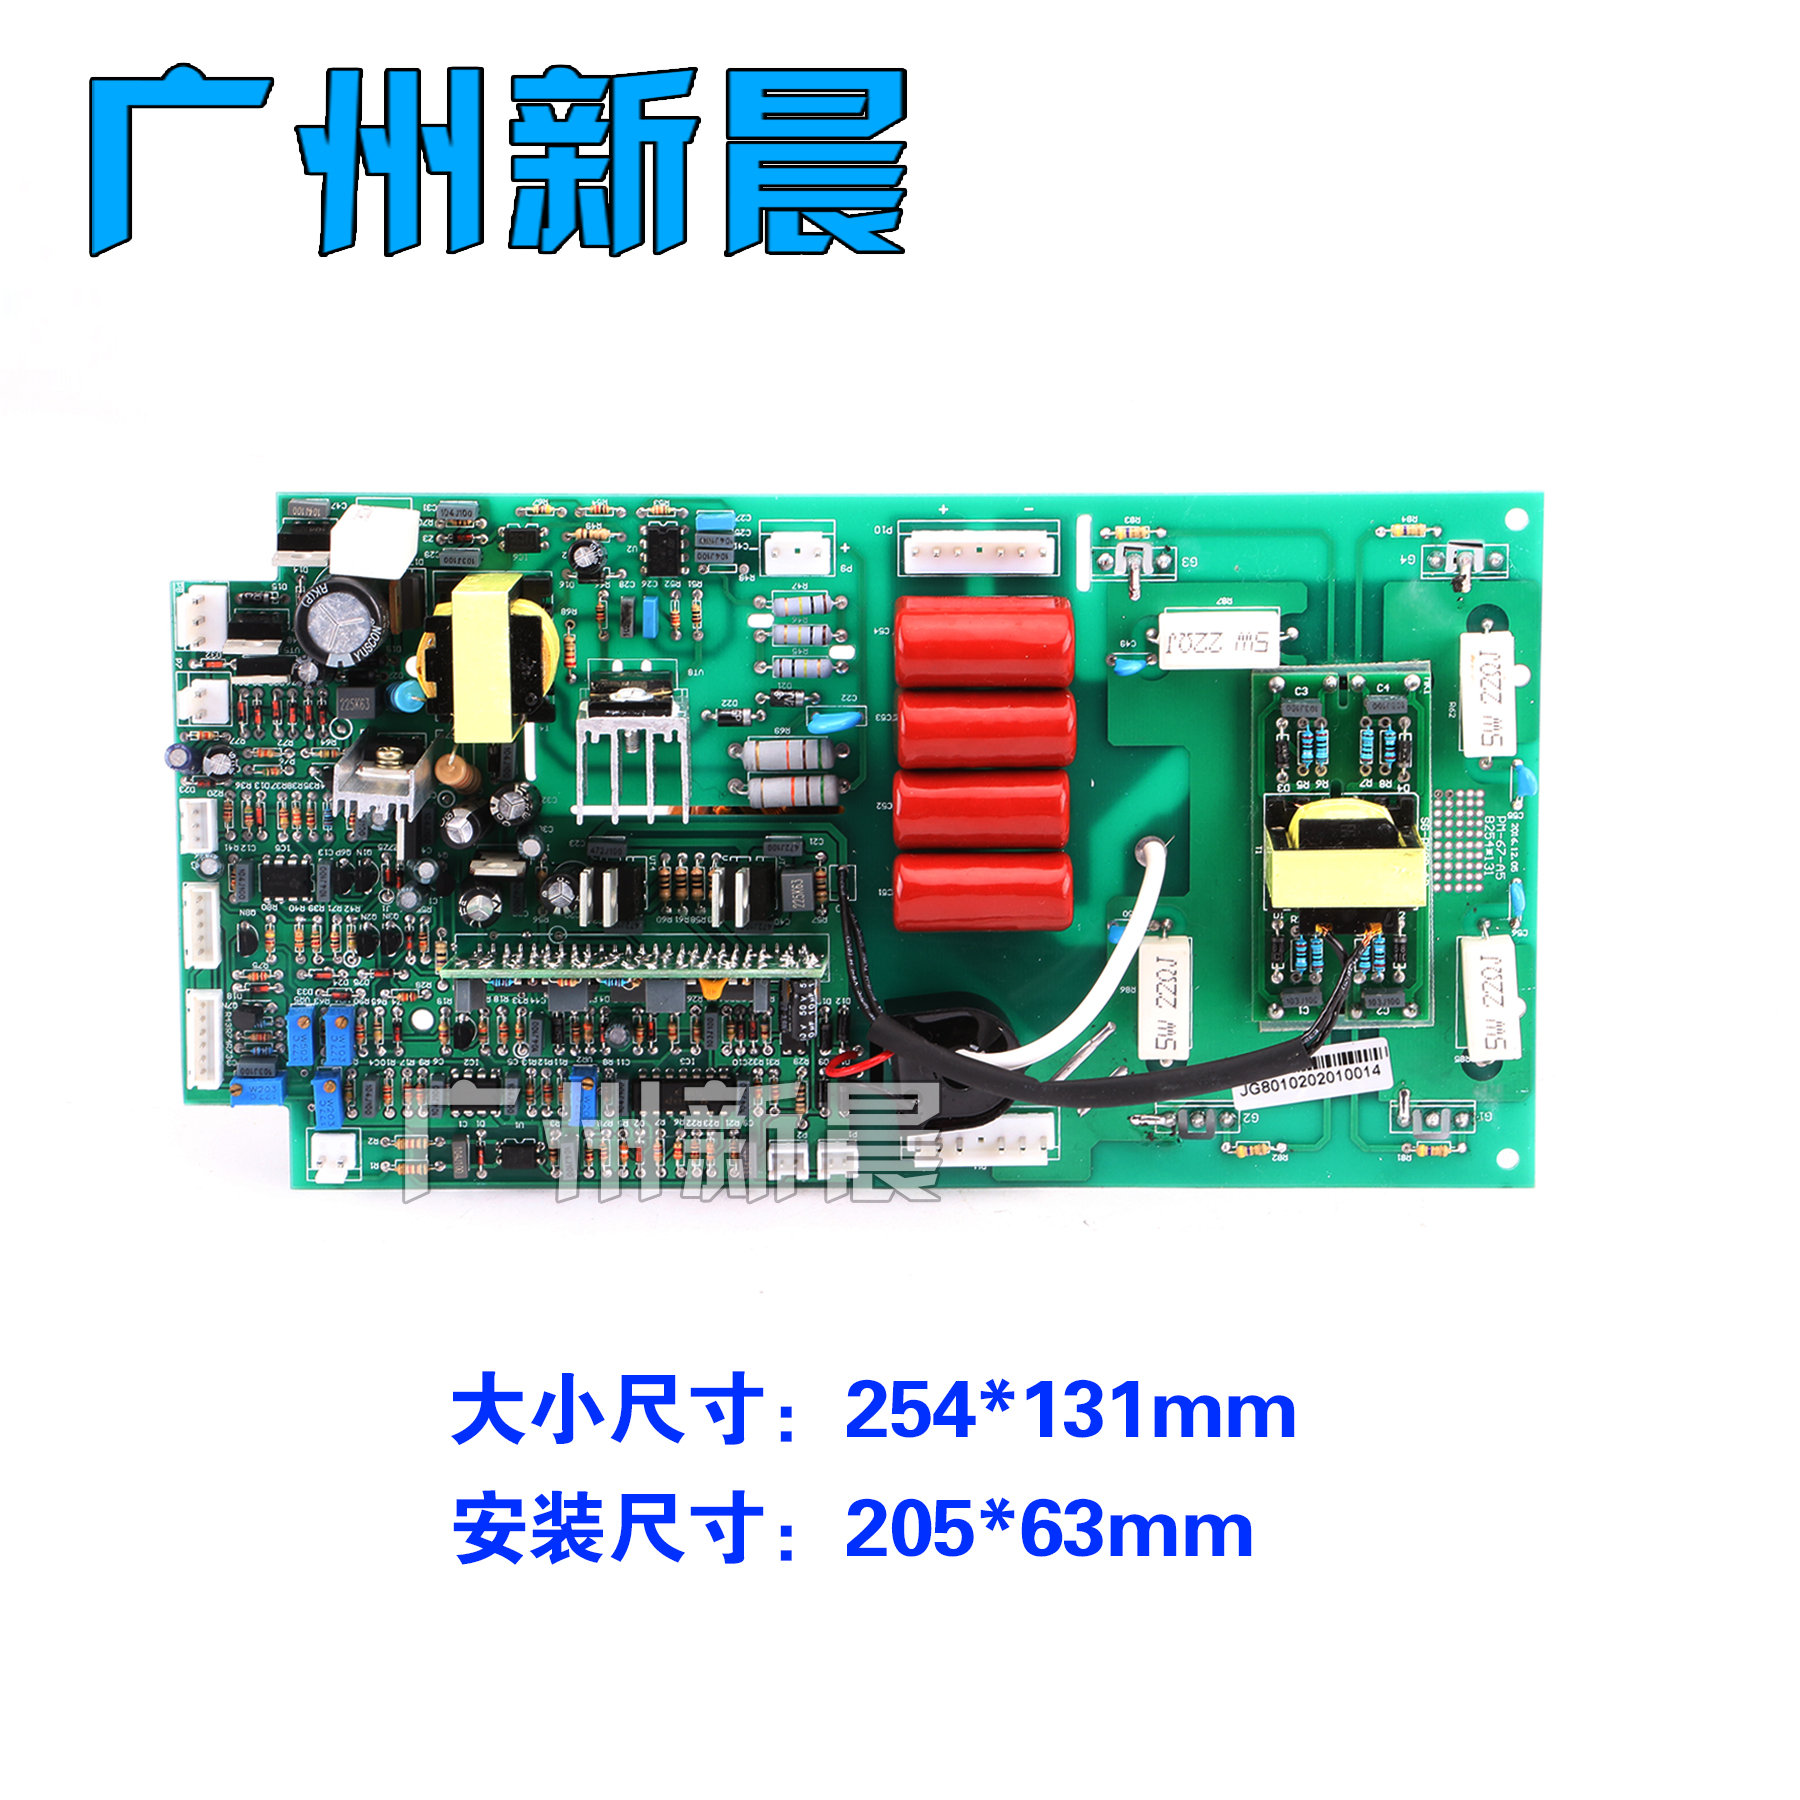 DC Welding Machine Circuit Board Accessories Single Tube 1 GBT Dual Power ZX7 315 400 Upper